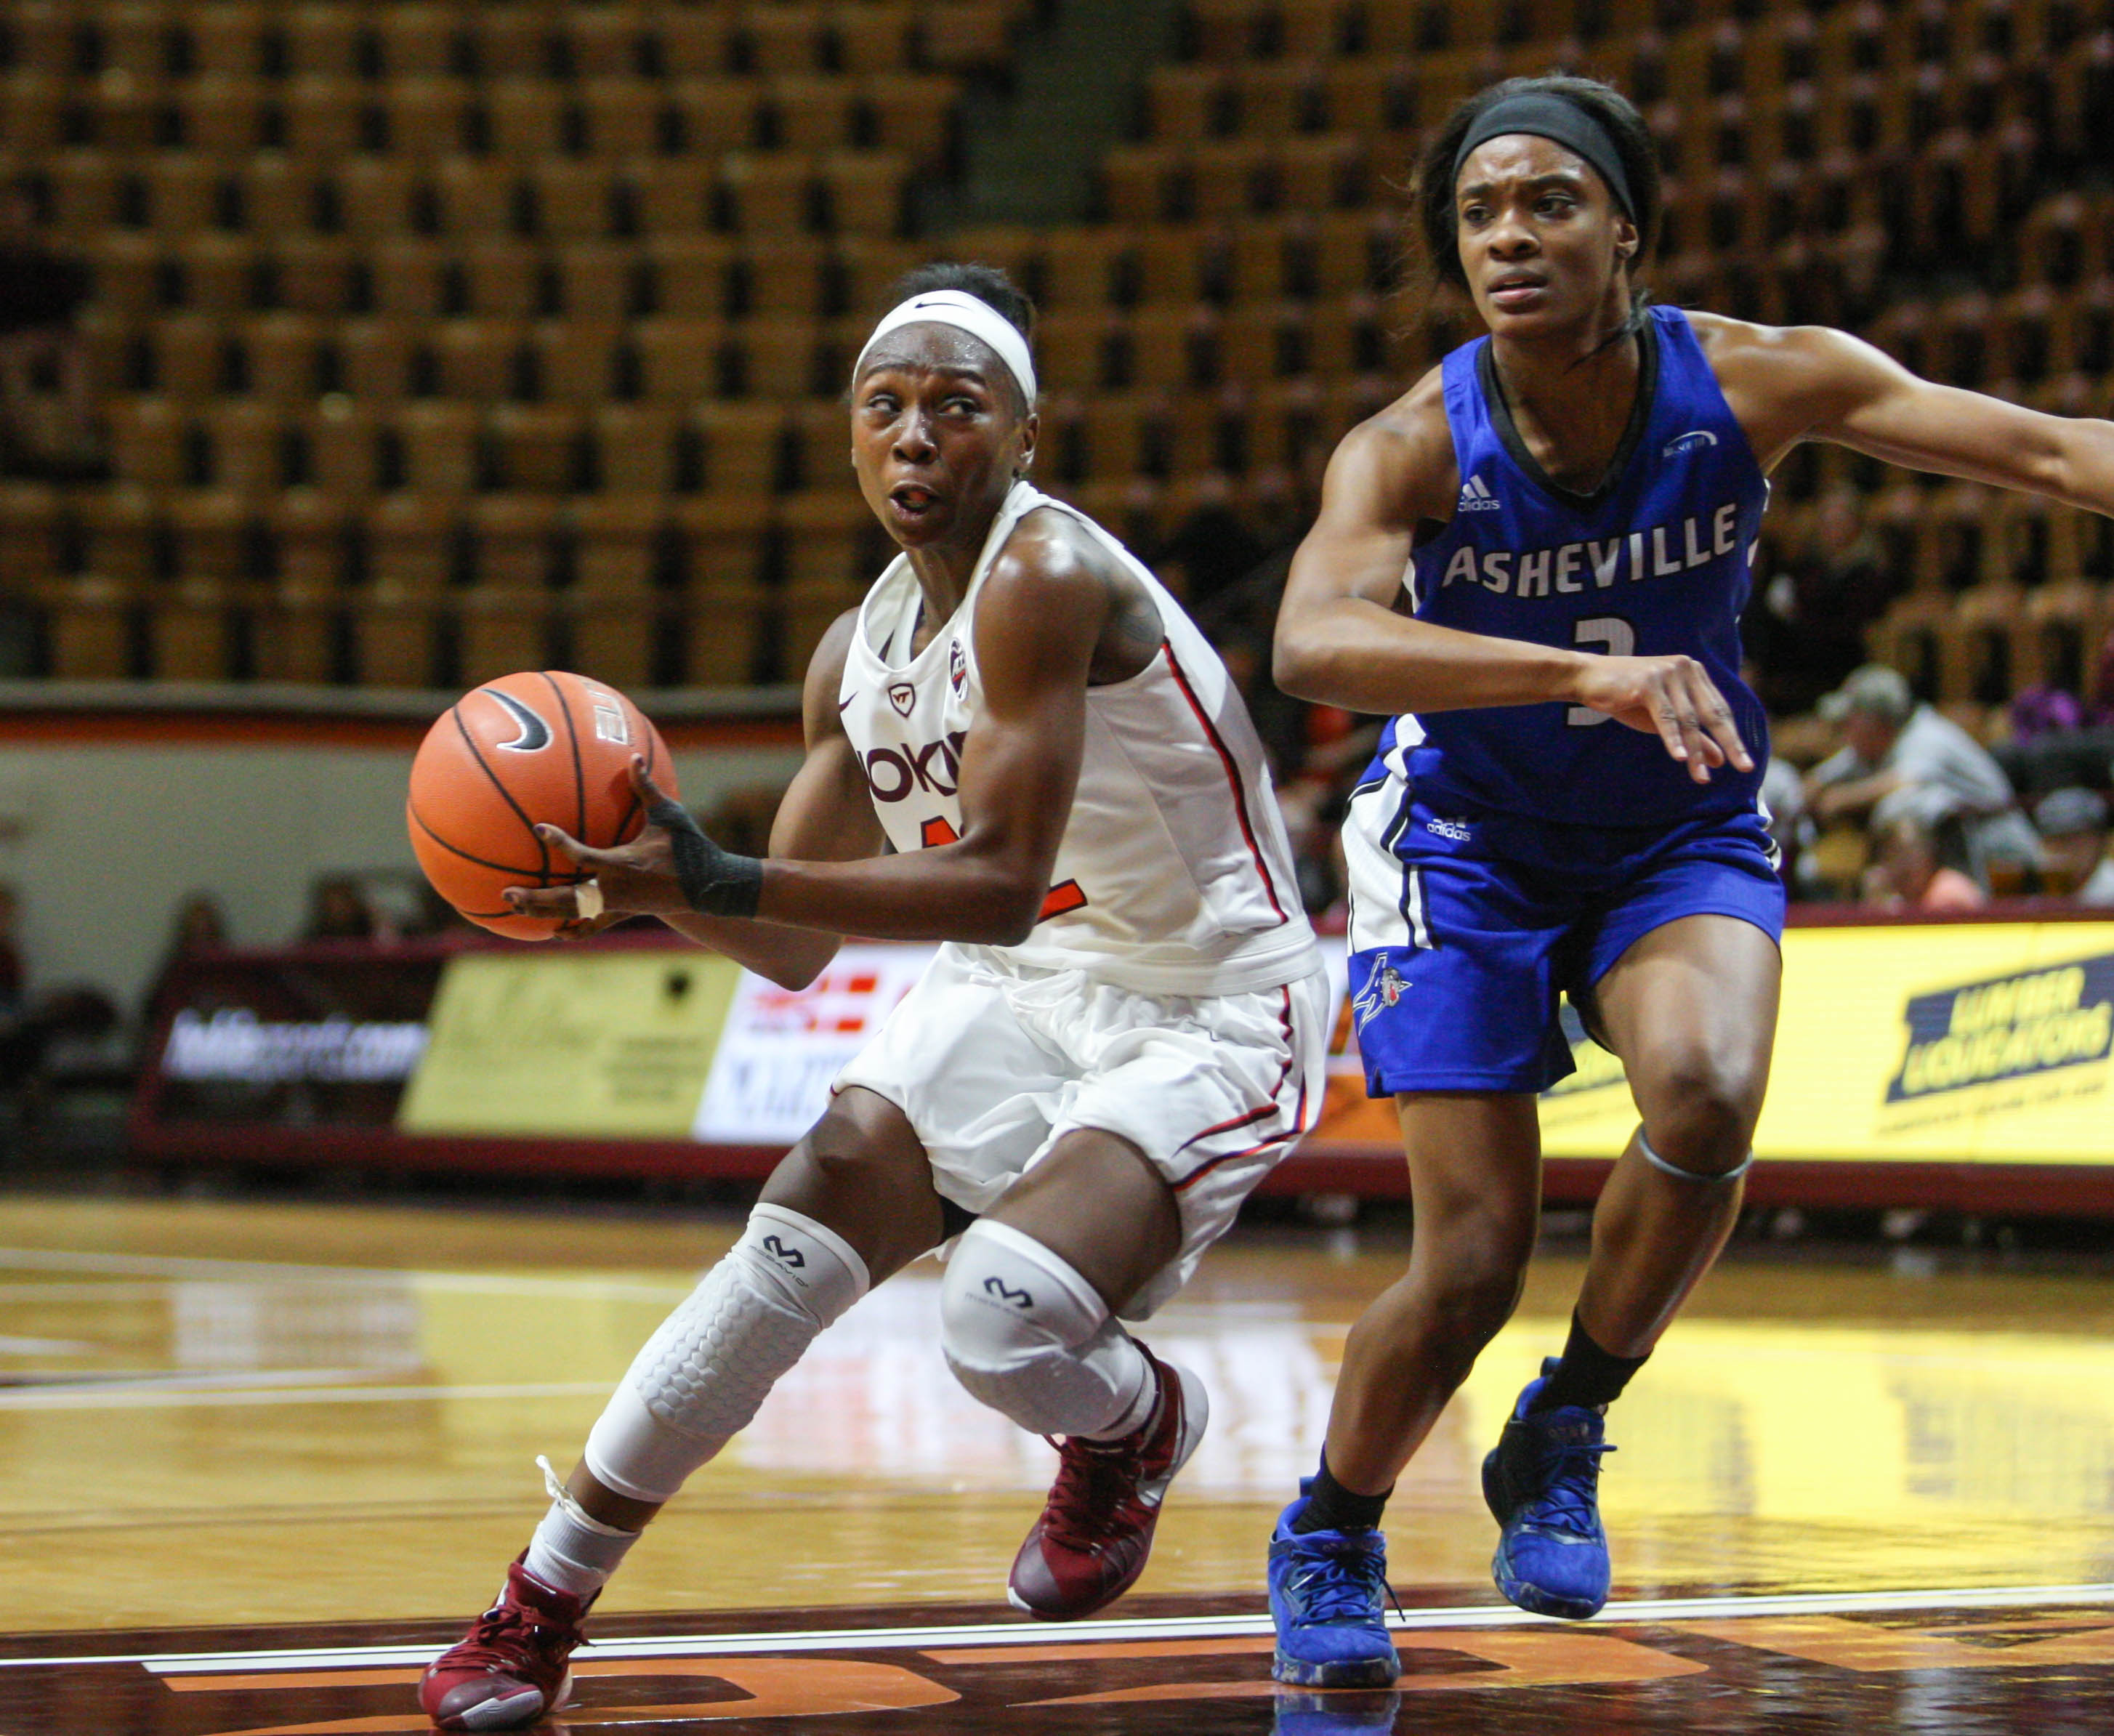 Chanette Hicks Virginia Tech women's basketball